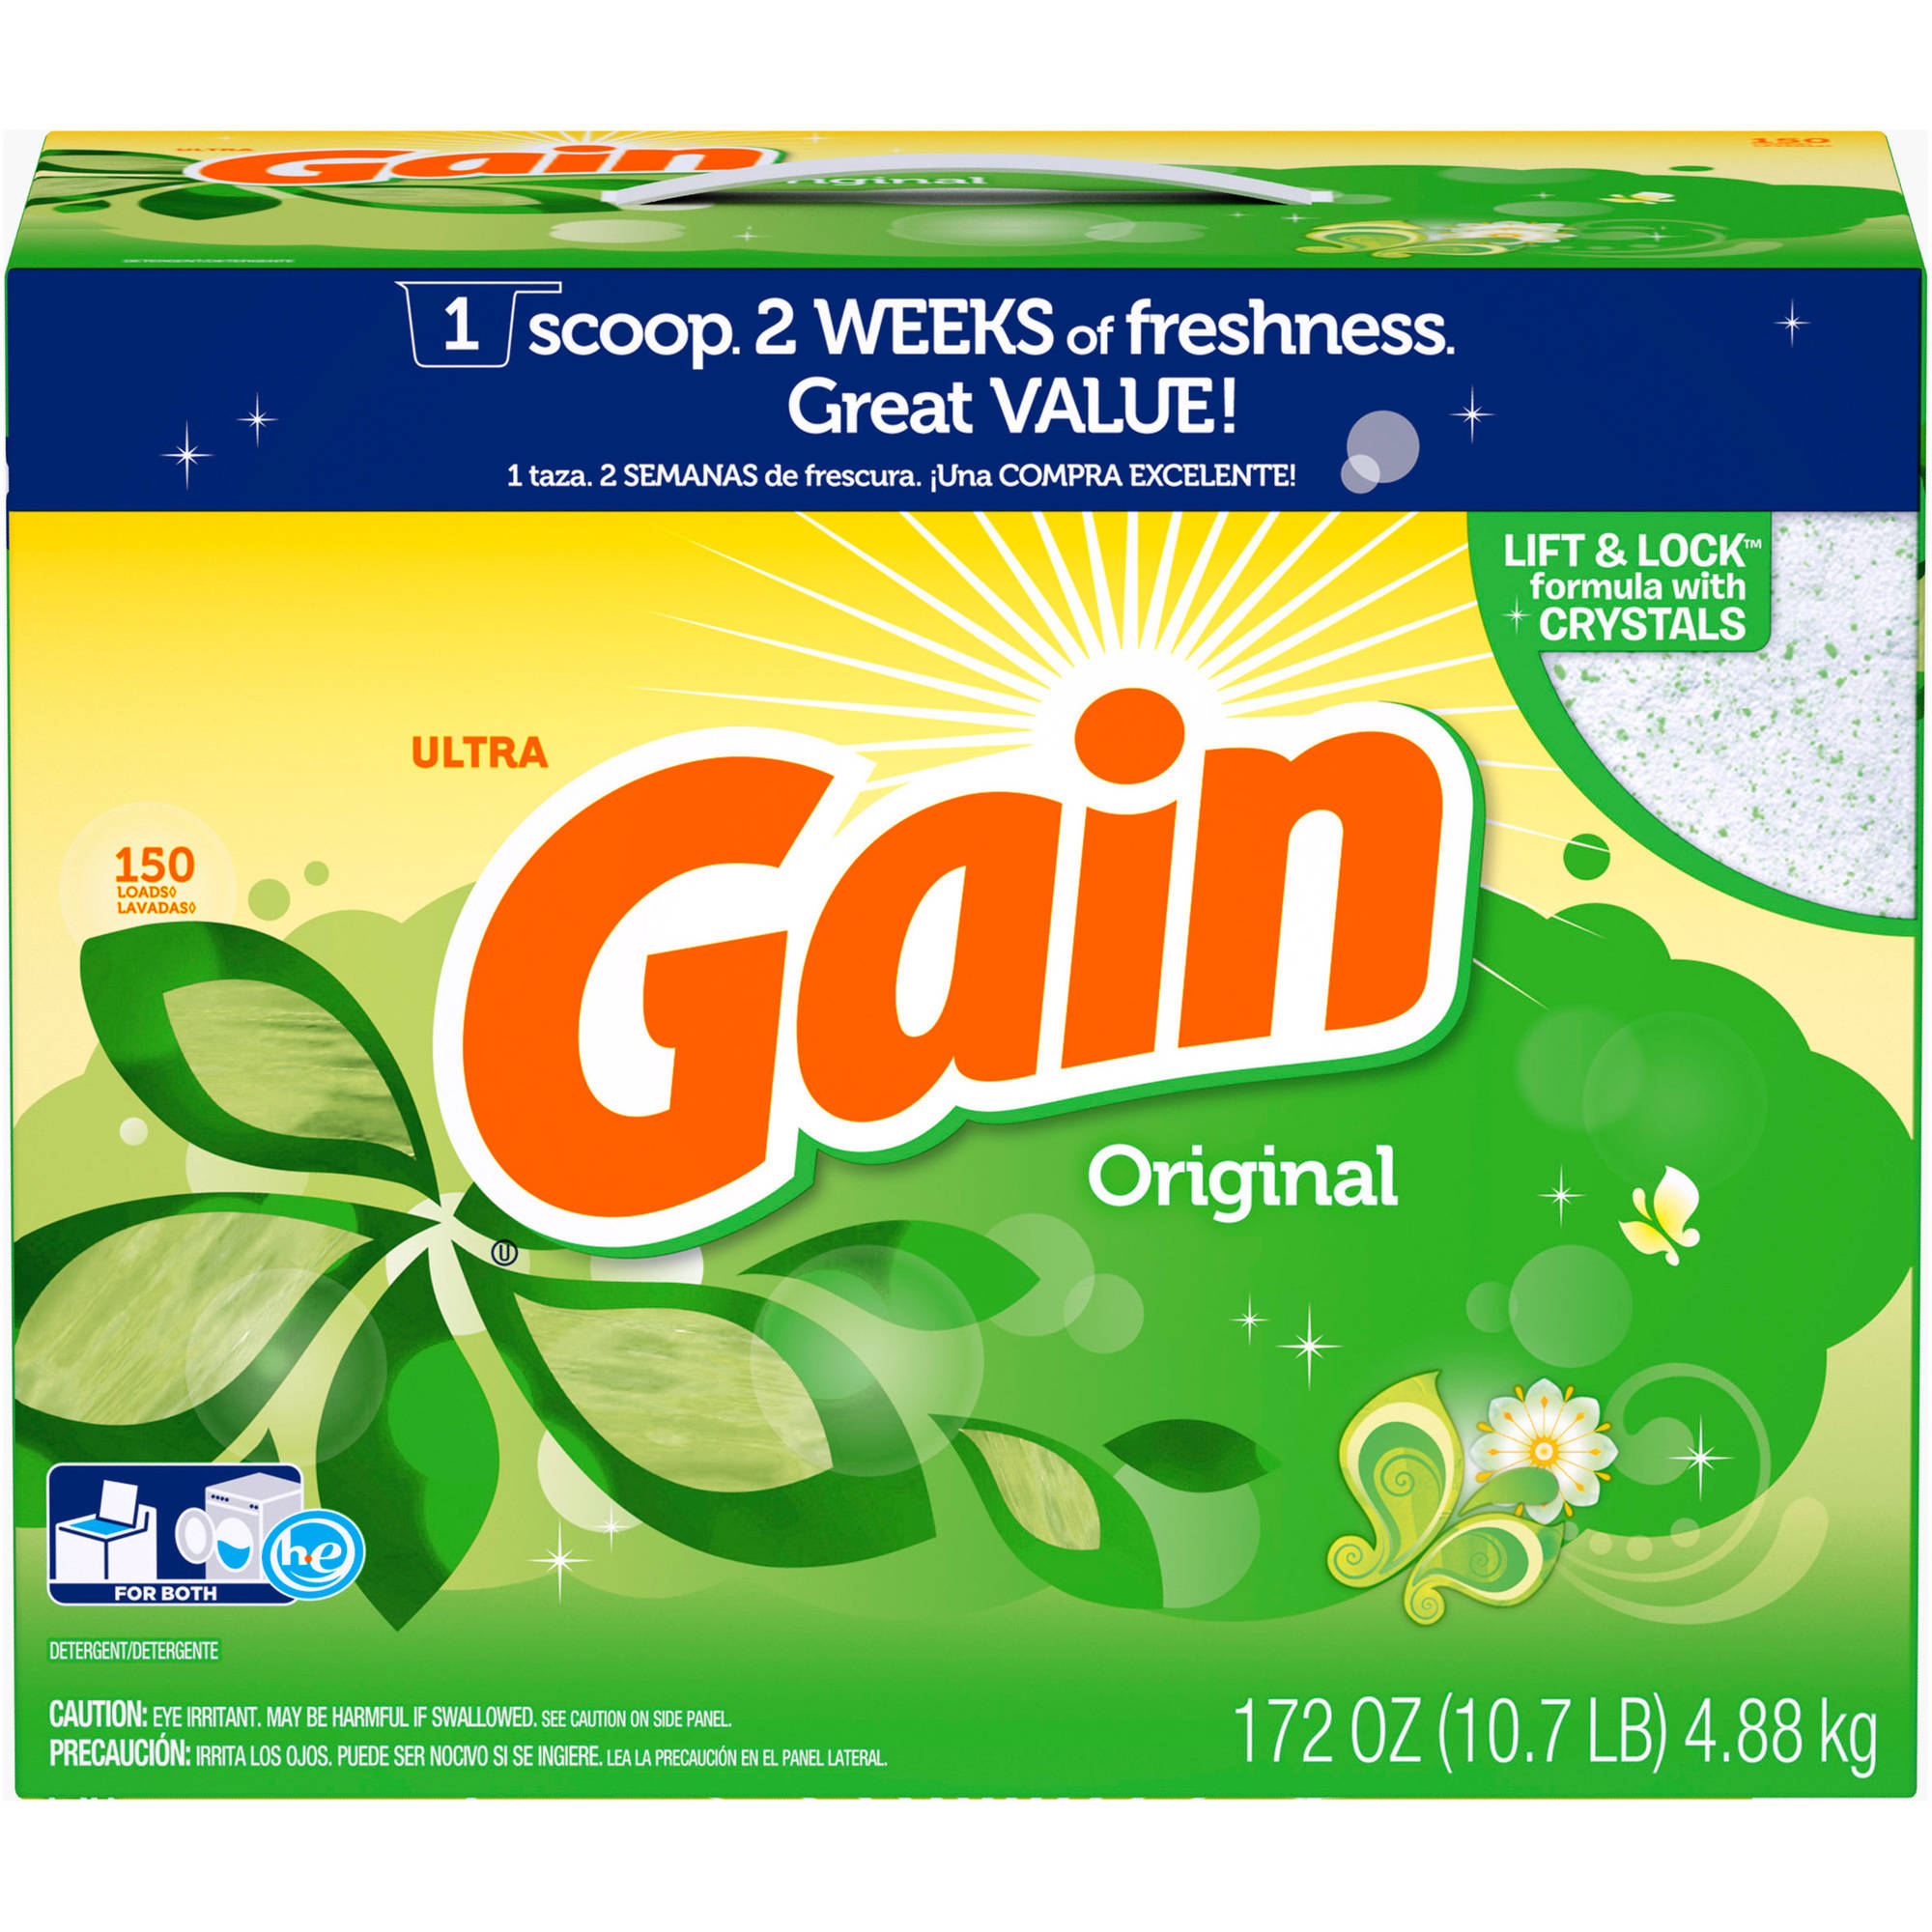 Gain Powder Laundry Detergent, Original Scent, 150 loads, 172 oz